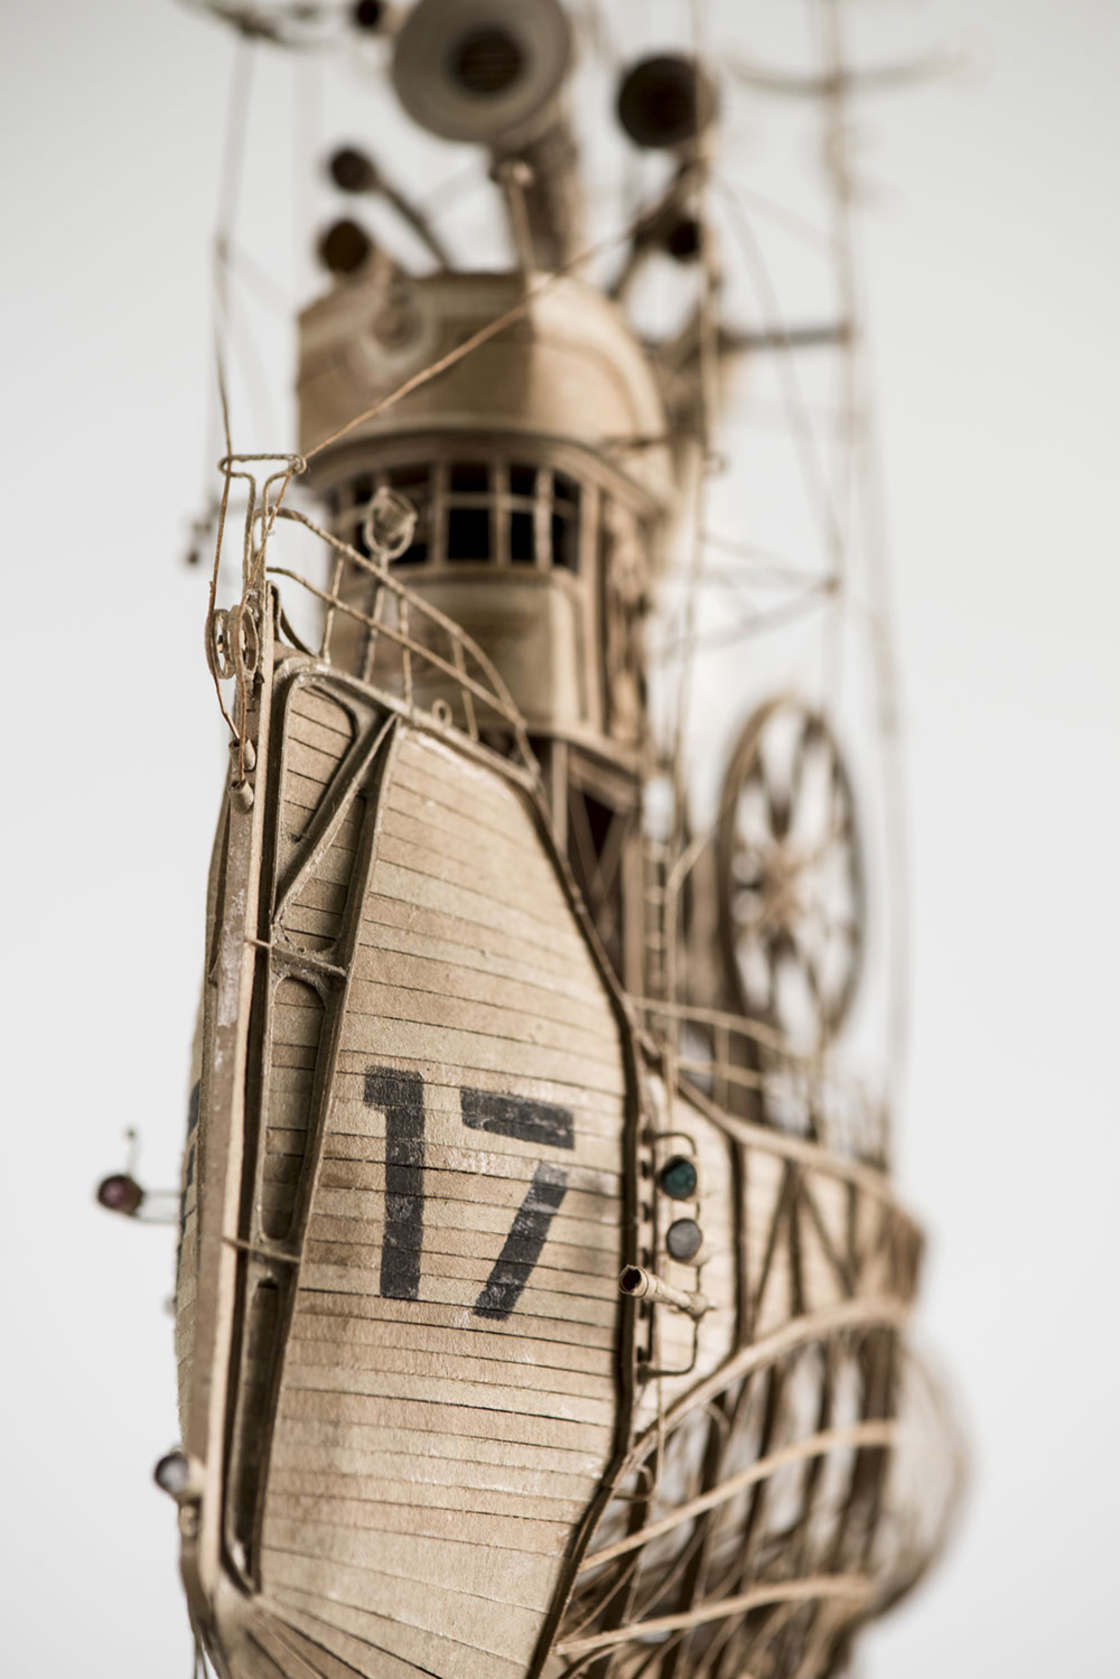 The incredible cardboard airships of Jeroen van Kesteren